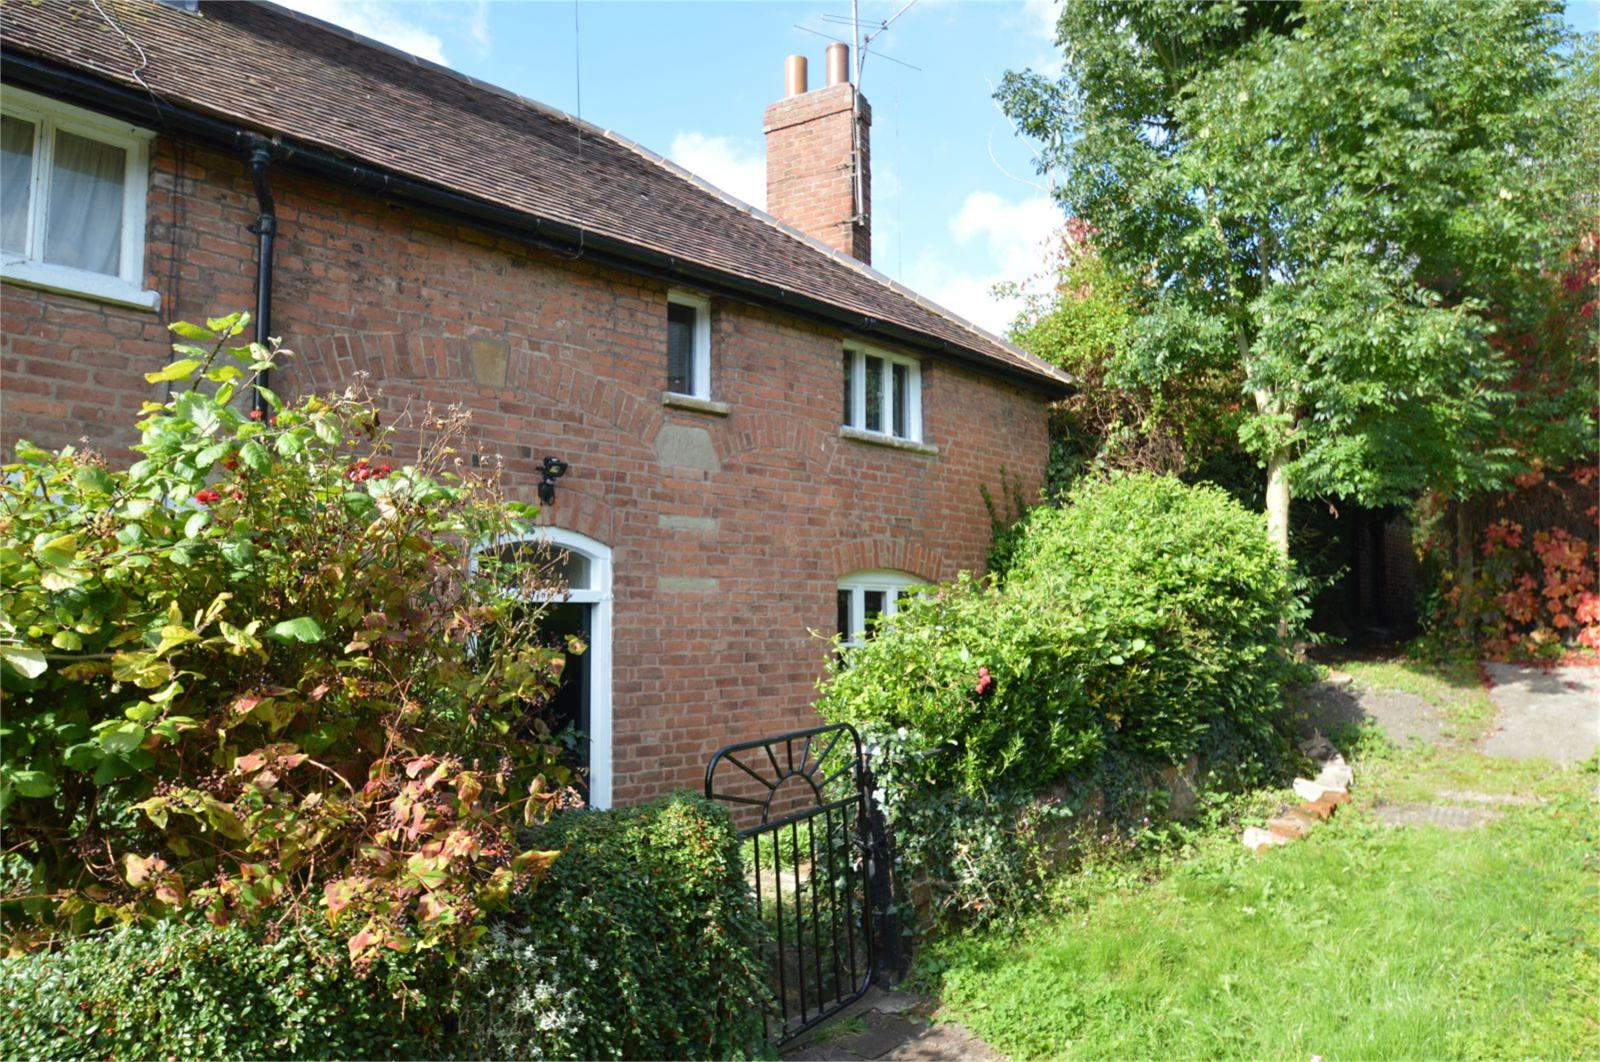 2 Bedrooms Semi Detached House for rent in 2 Friars Walk, Old Street, Ludlow, Shropshire, SY8